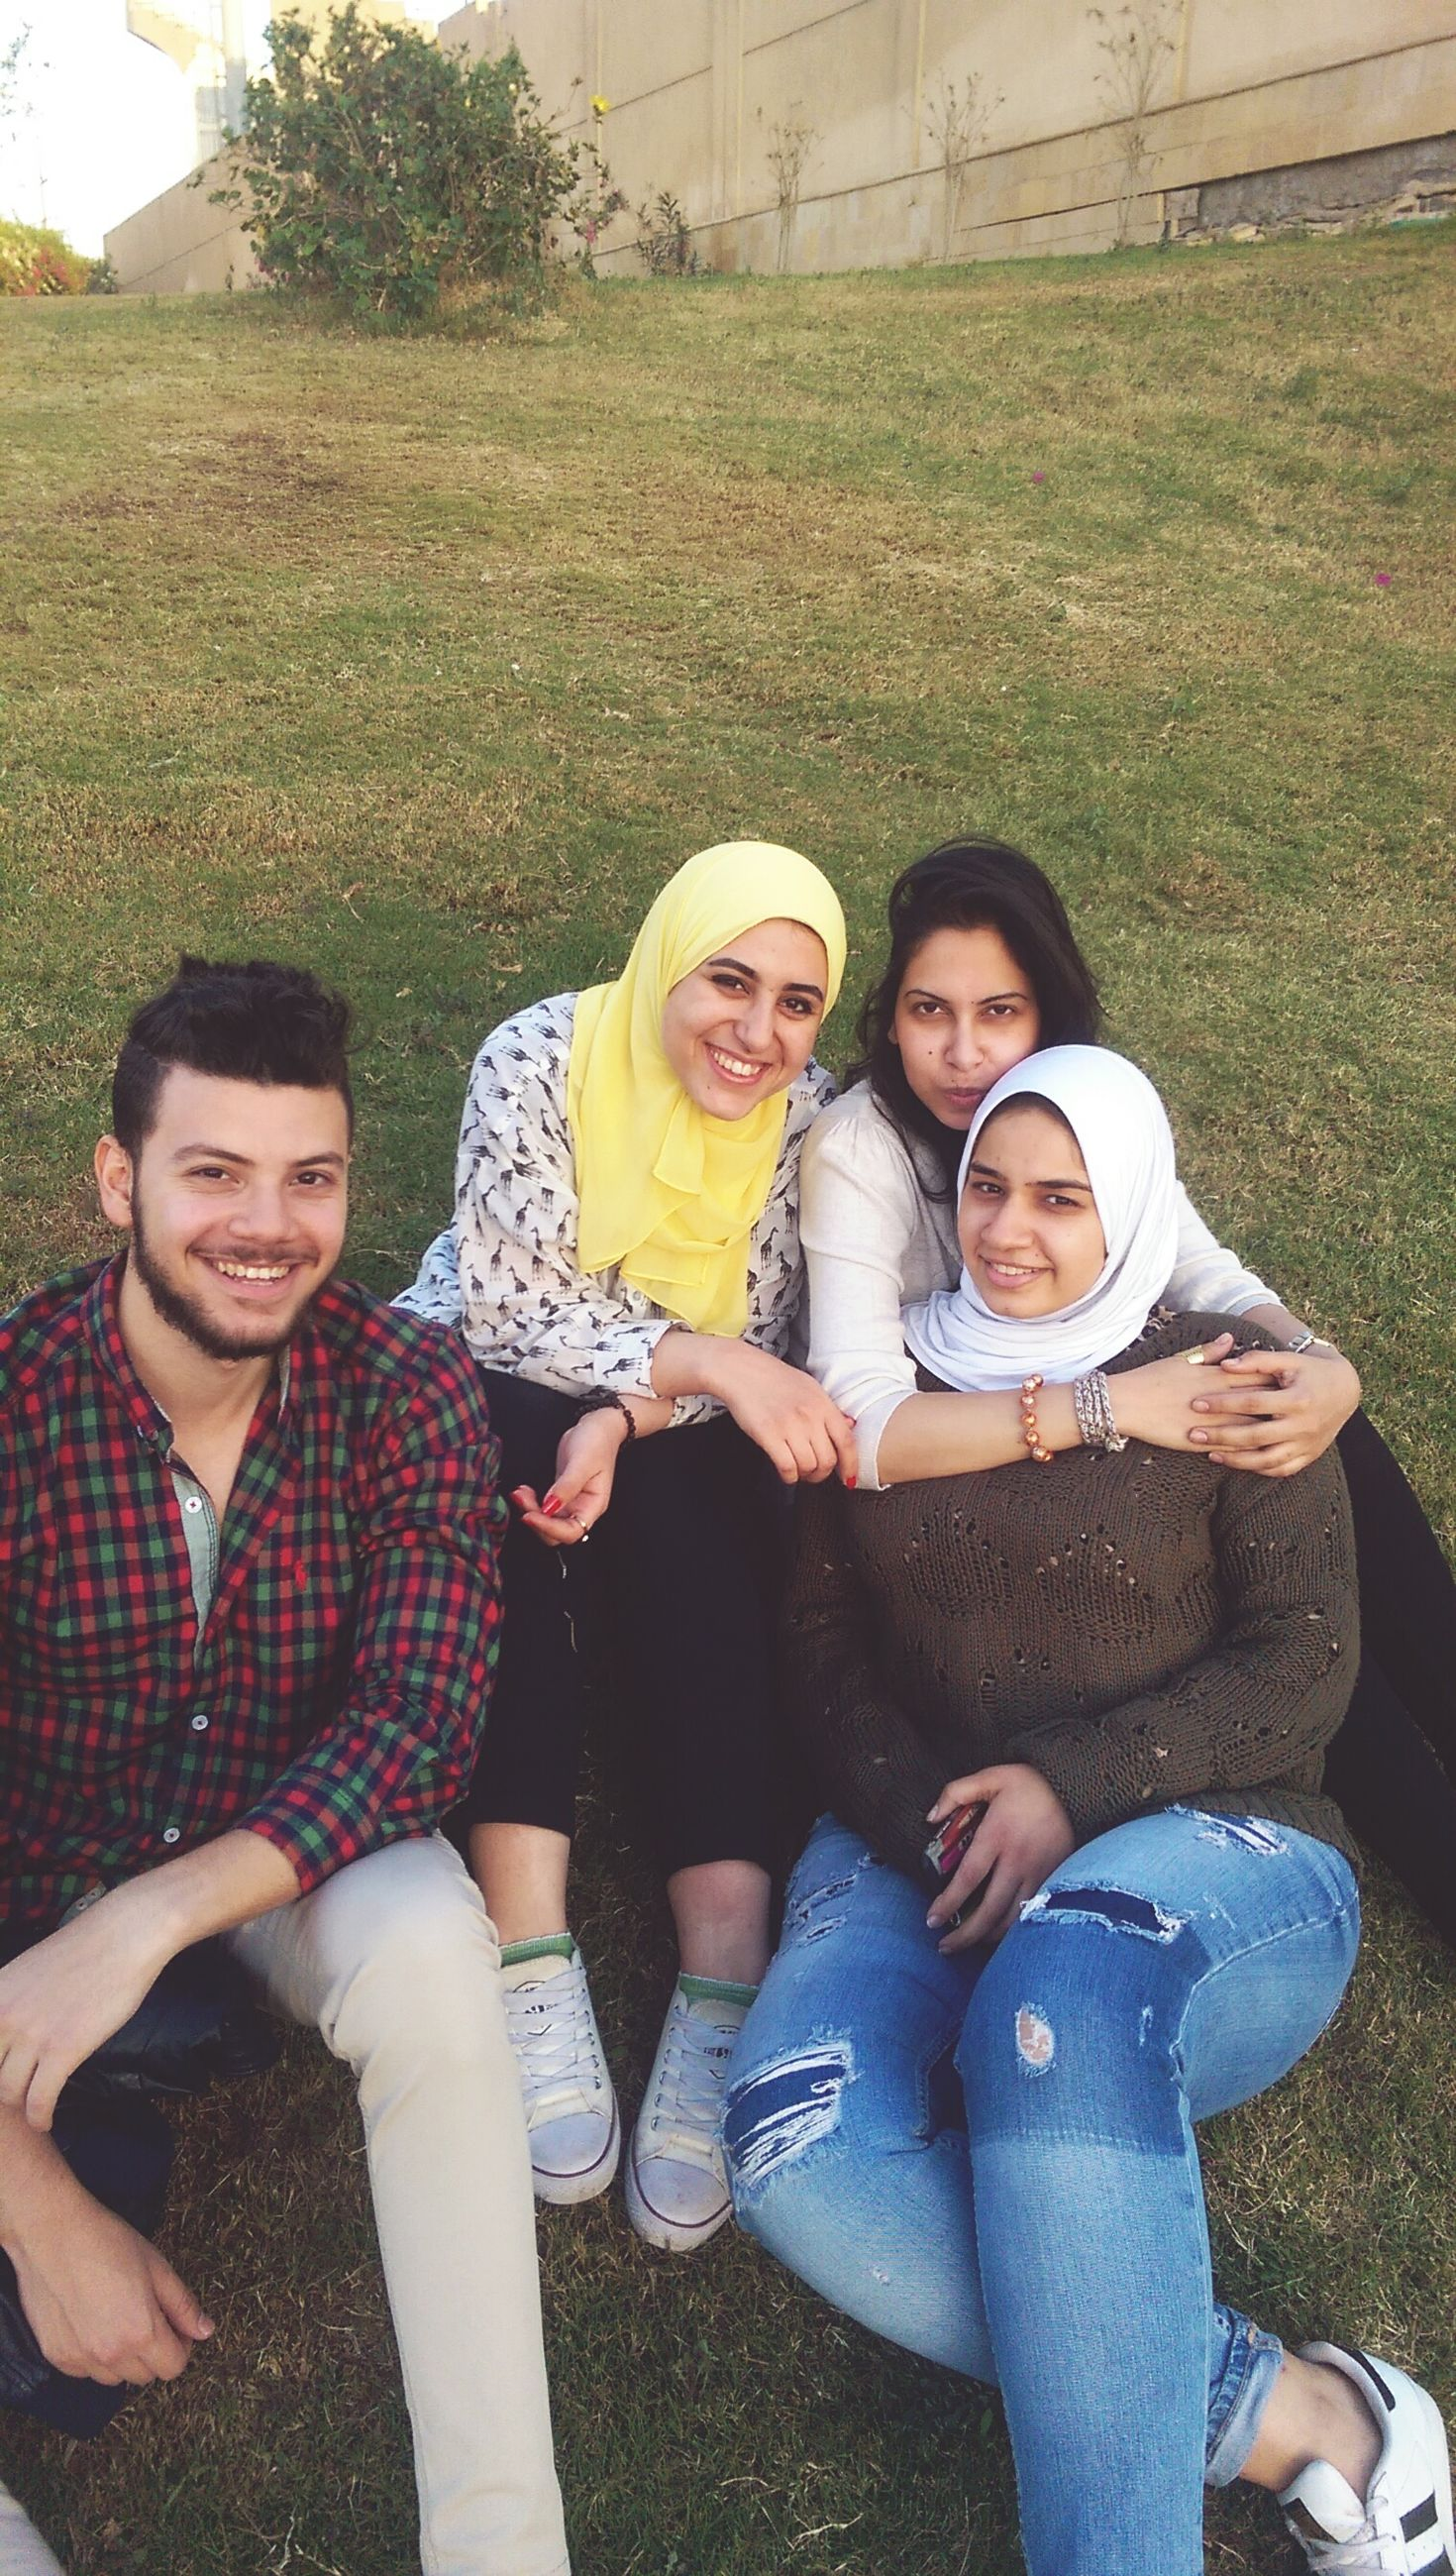 togetherness, bonding, person, lifestyles, smiling, portrait, leisure activity, love, happiness, looking at camera, casual clothing, childhood, friendship, front view, elementary age, family, people